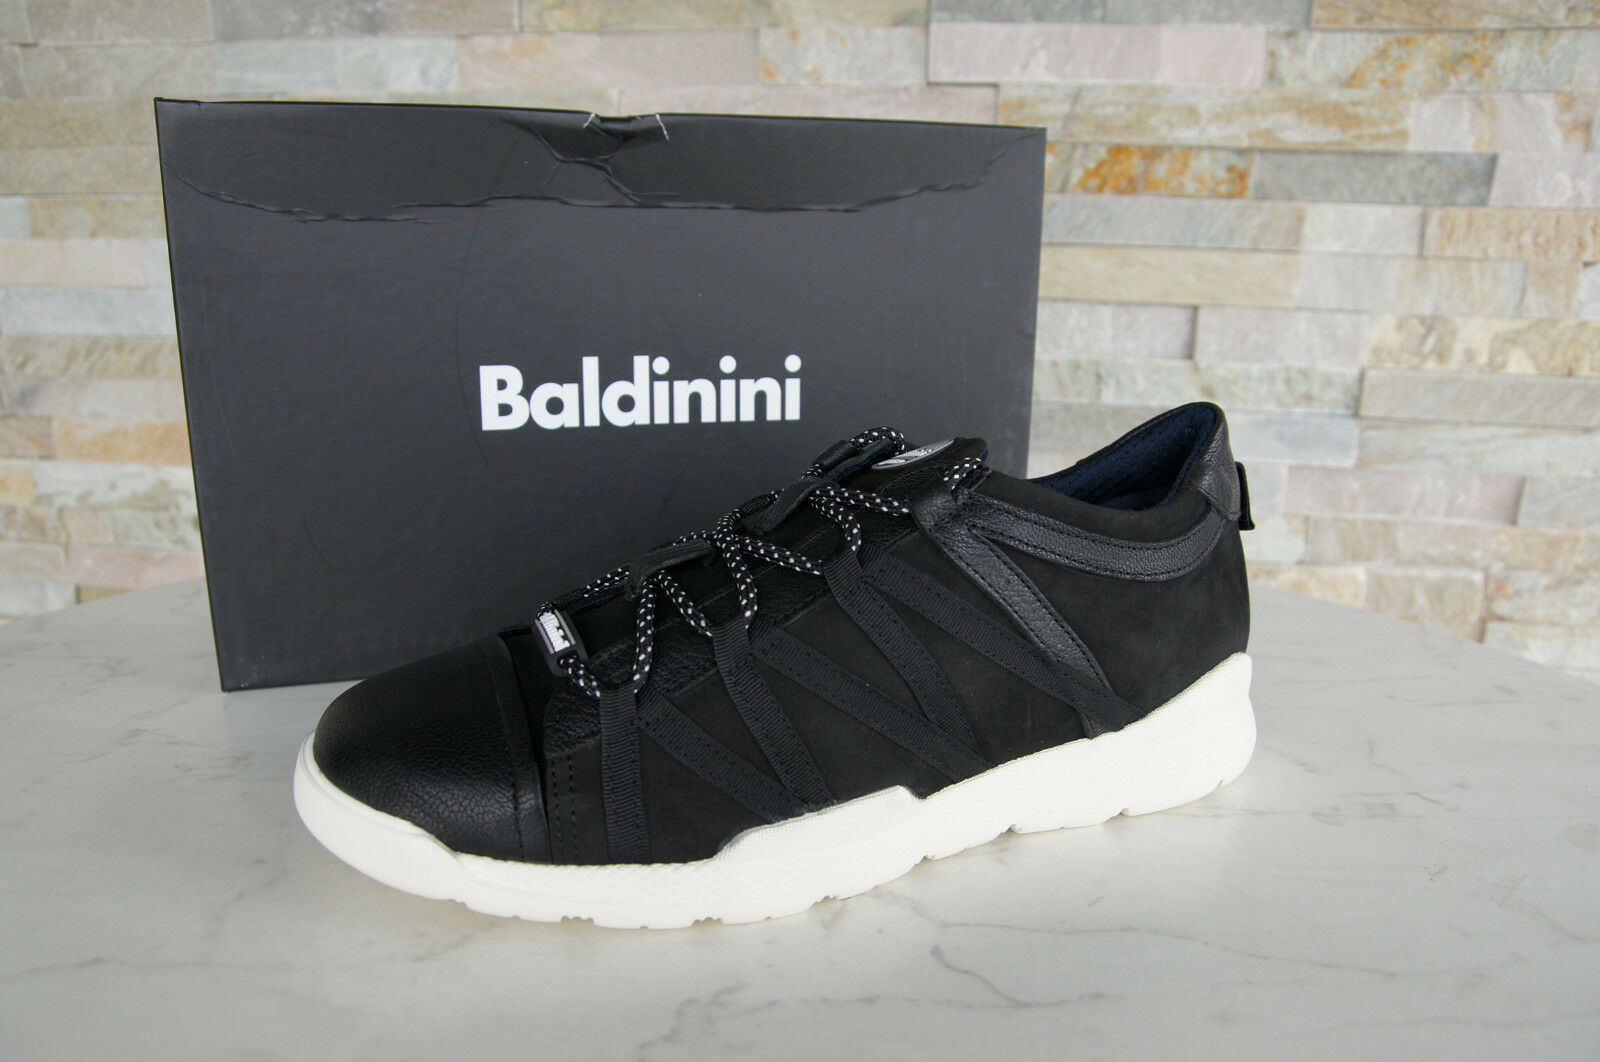 c92648fc54 Baldinini Size 46 Sneakers Lace up Low shoes New Ehemuvp Black ...